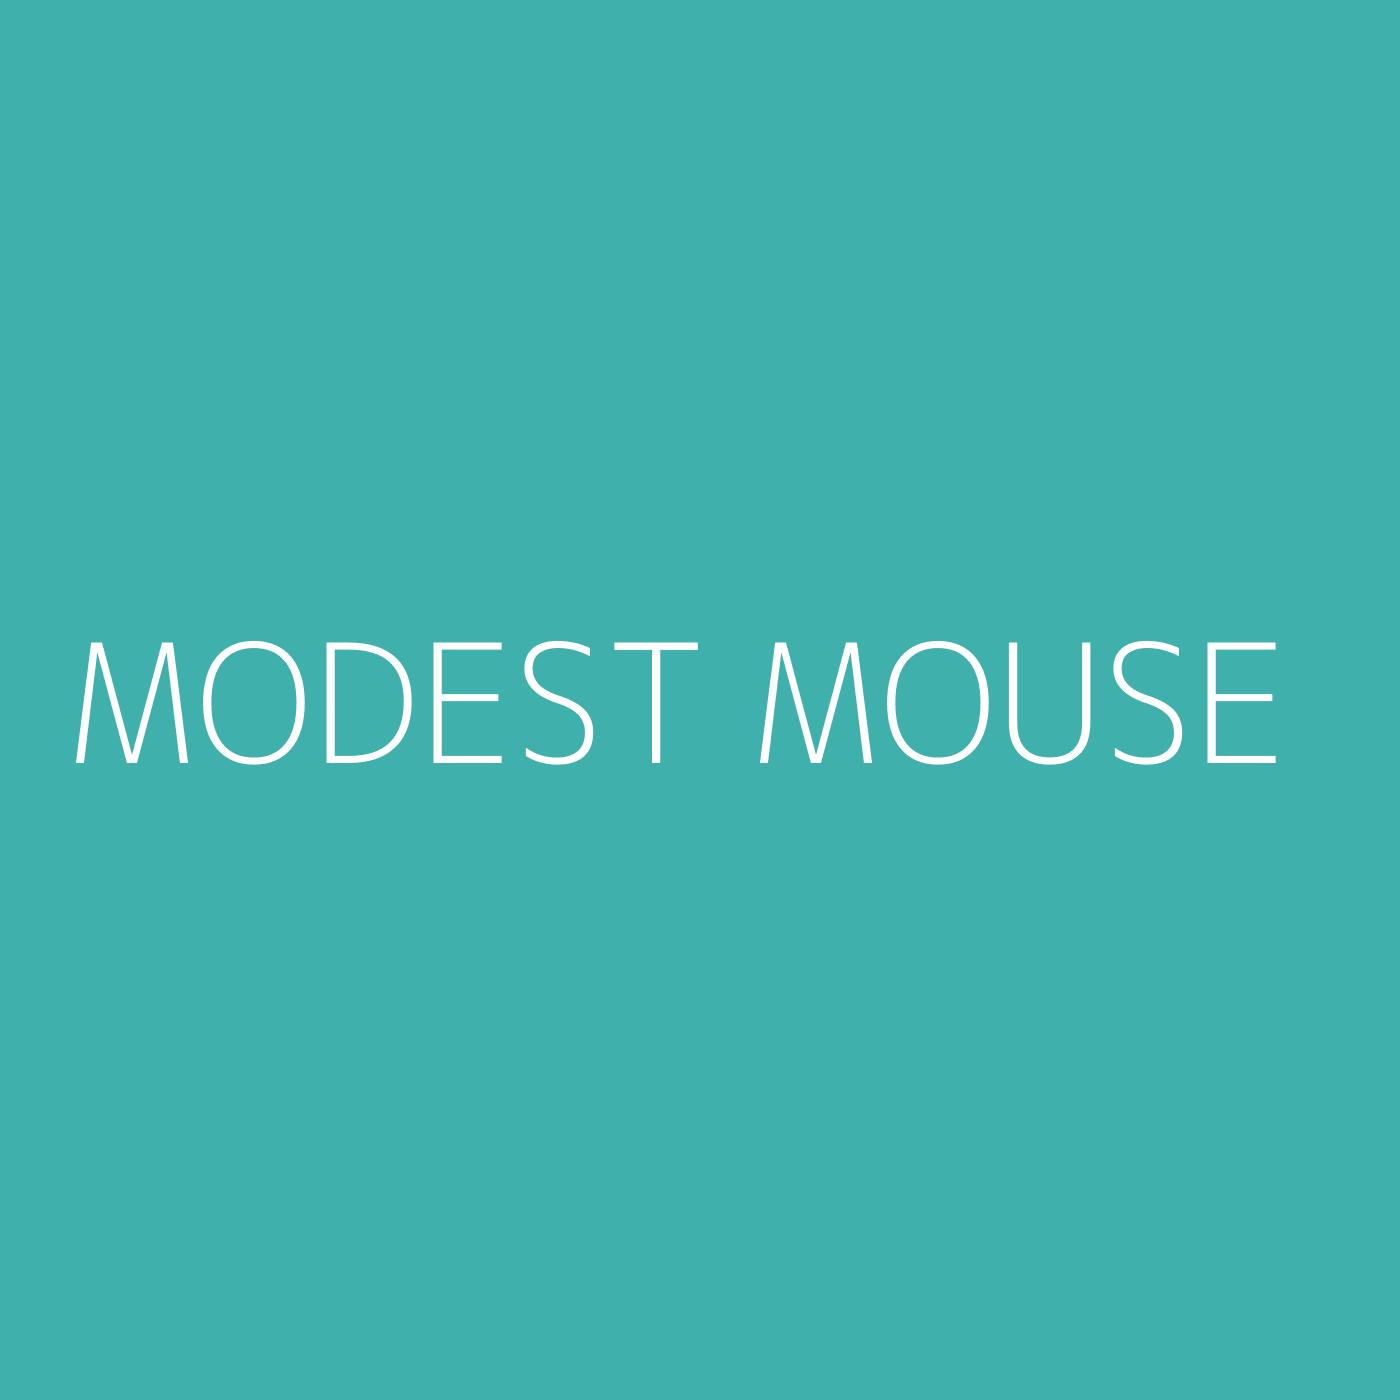 Modest Mouse Playlist Artwork